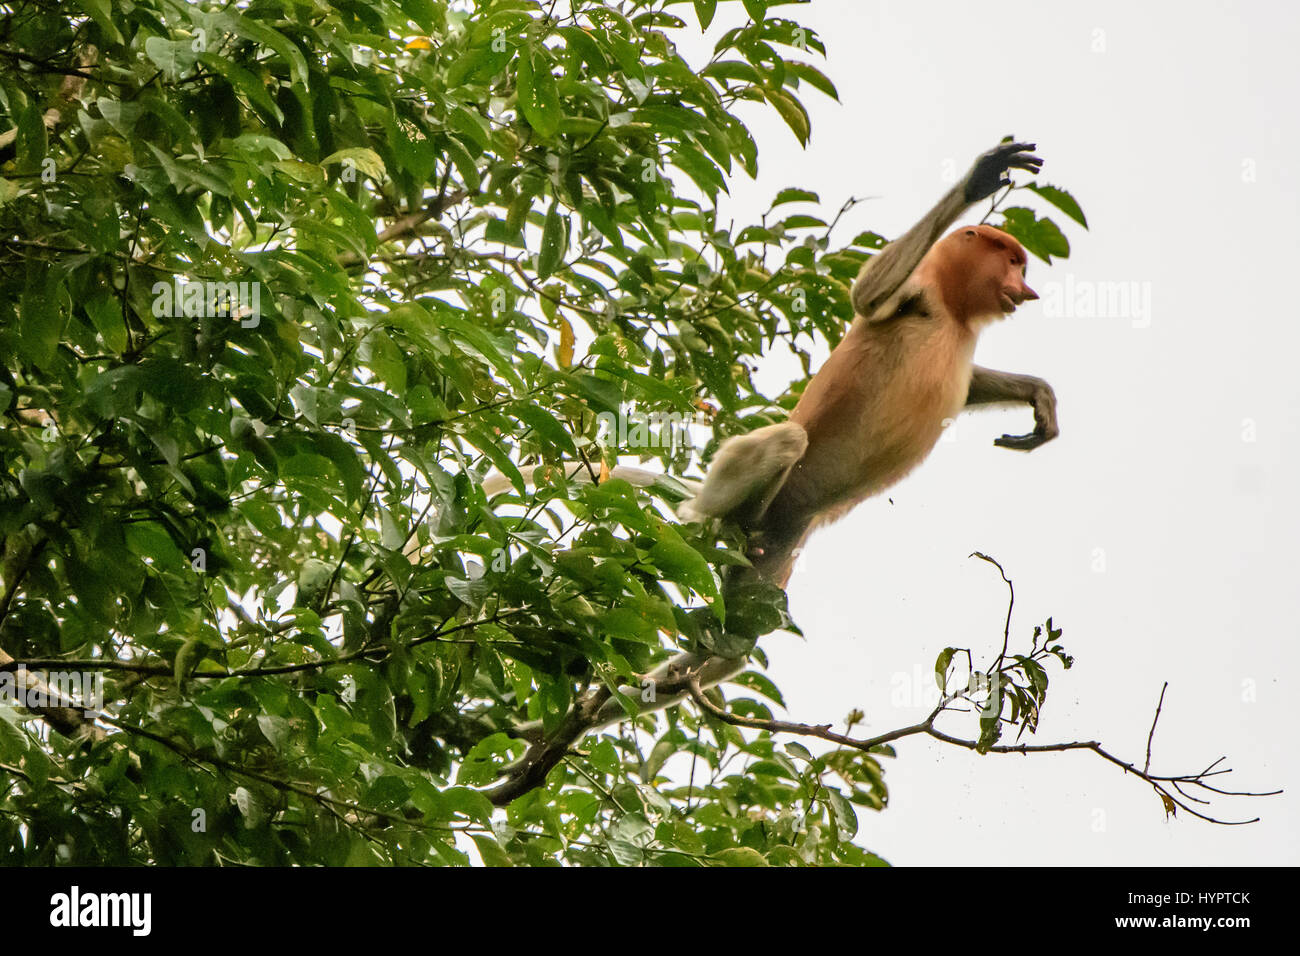 Proboscis Monkey leaping out of a tree - Stock Image